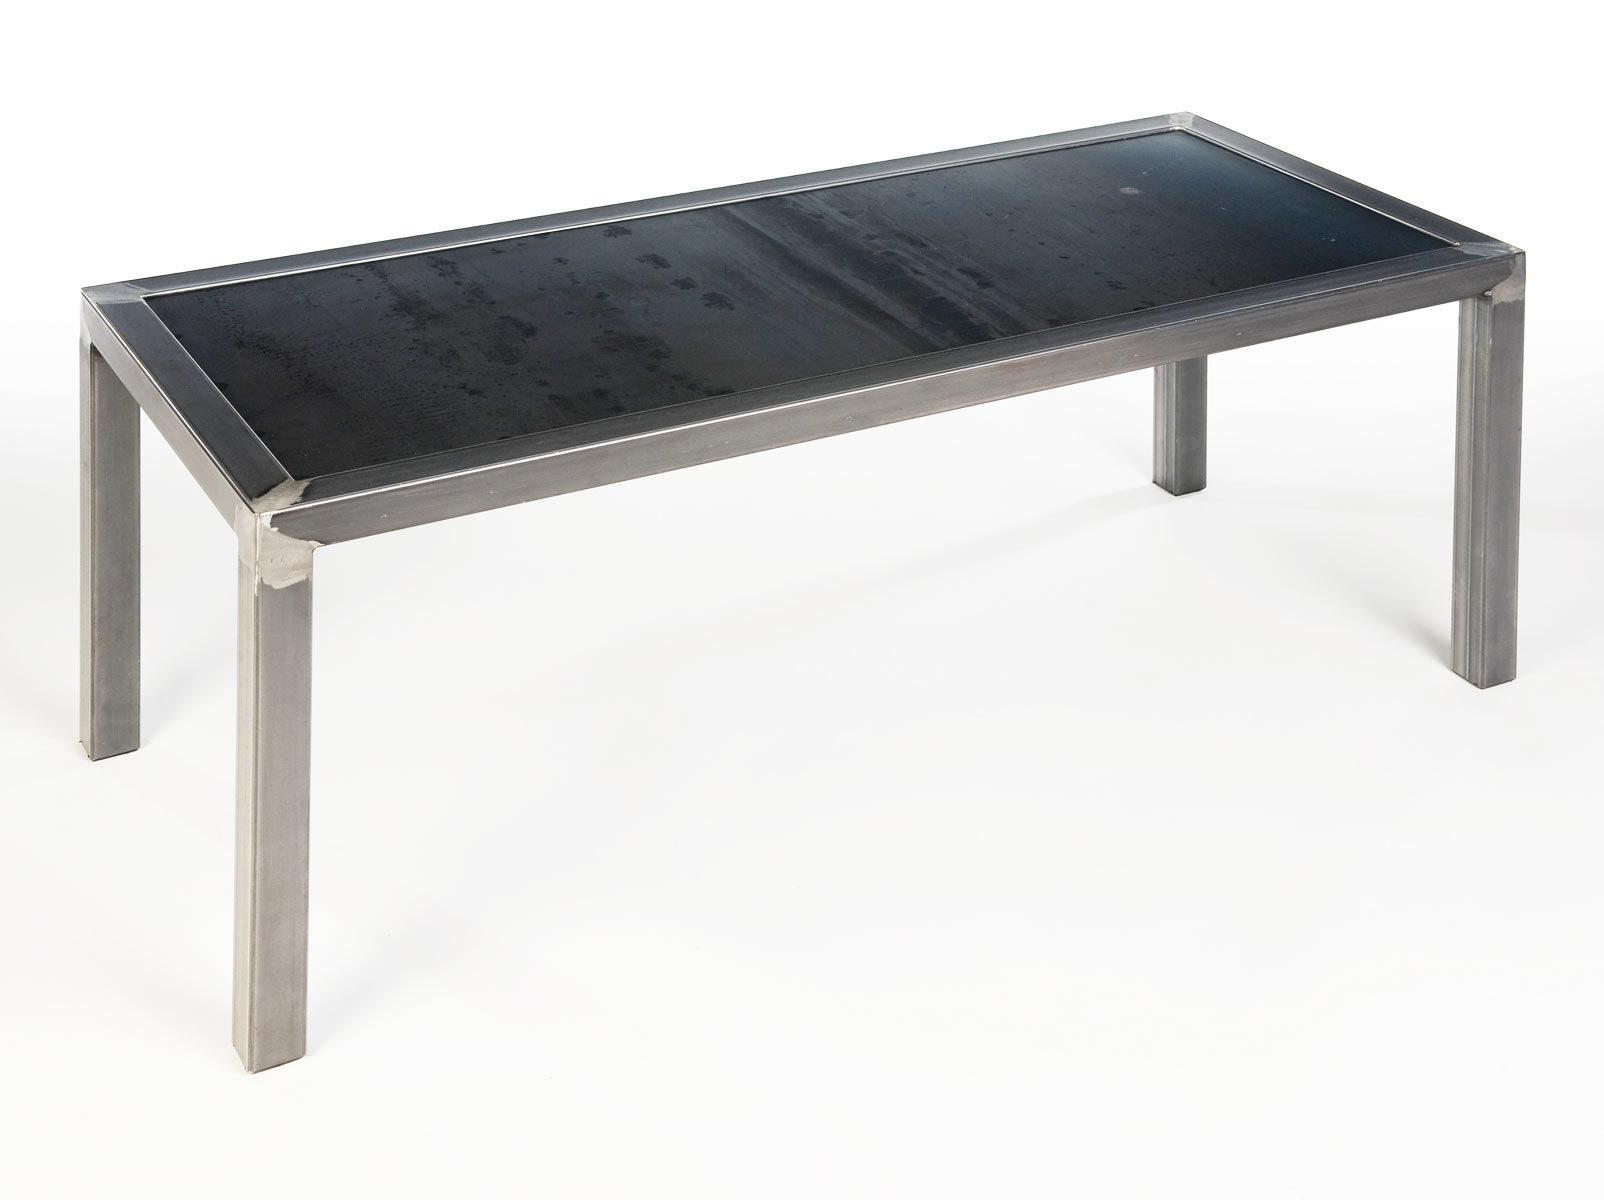 Bench made from waxed steel tube frame and 11 guage steel plate